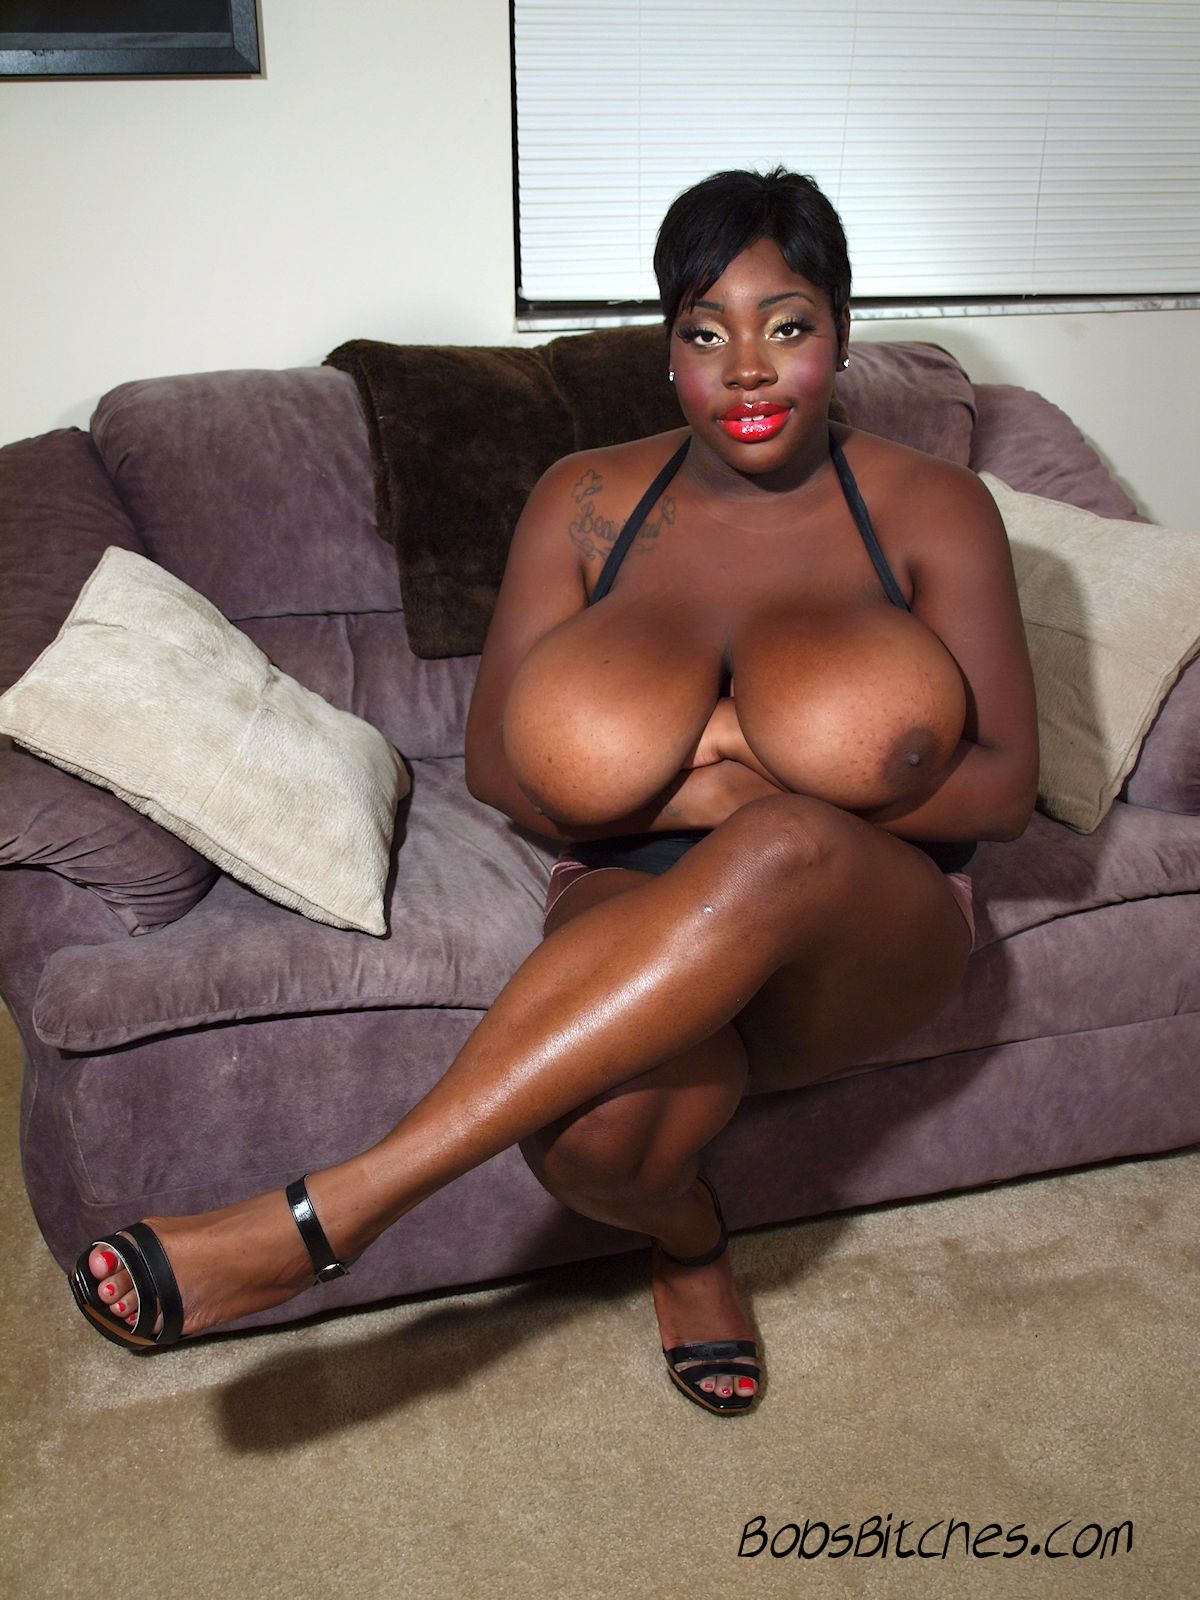 Jamie Sax exposes her massive black boobs.